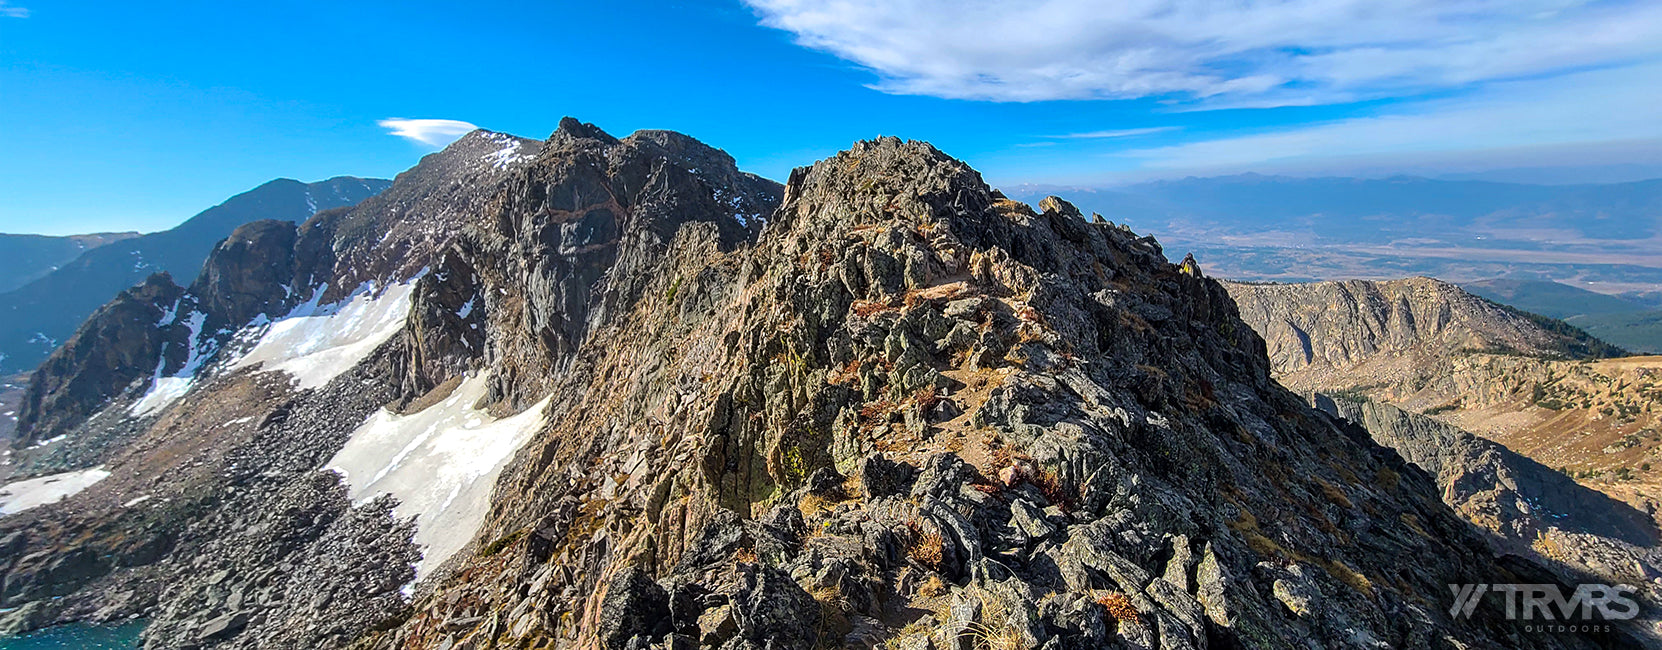 Mount Neva, North Ridge - Pfiffner Traverse, Indian Peaks Wilderness, Arapaho, Colorado, Backpacking, Ultralight | TRVRS Outdoors